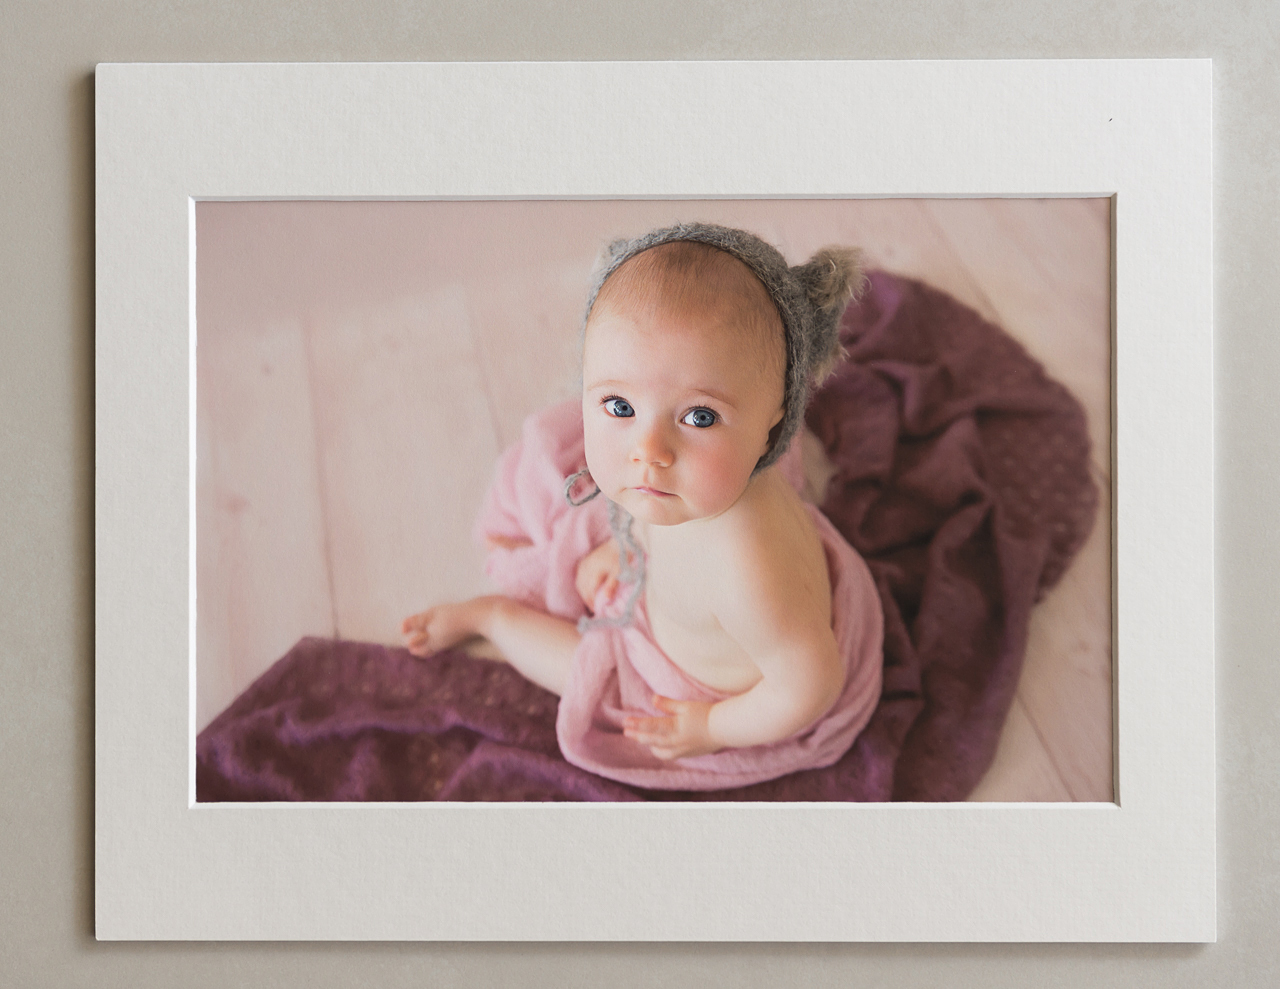 Fine art mounts, printed products, print your photos, wall art, printed photography, baby photography, professional prints